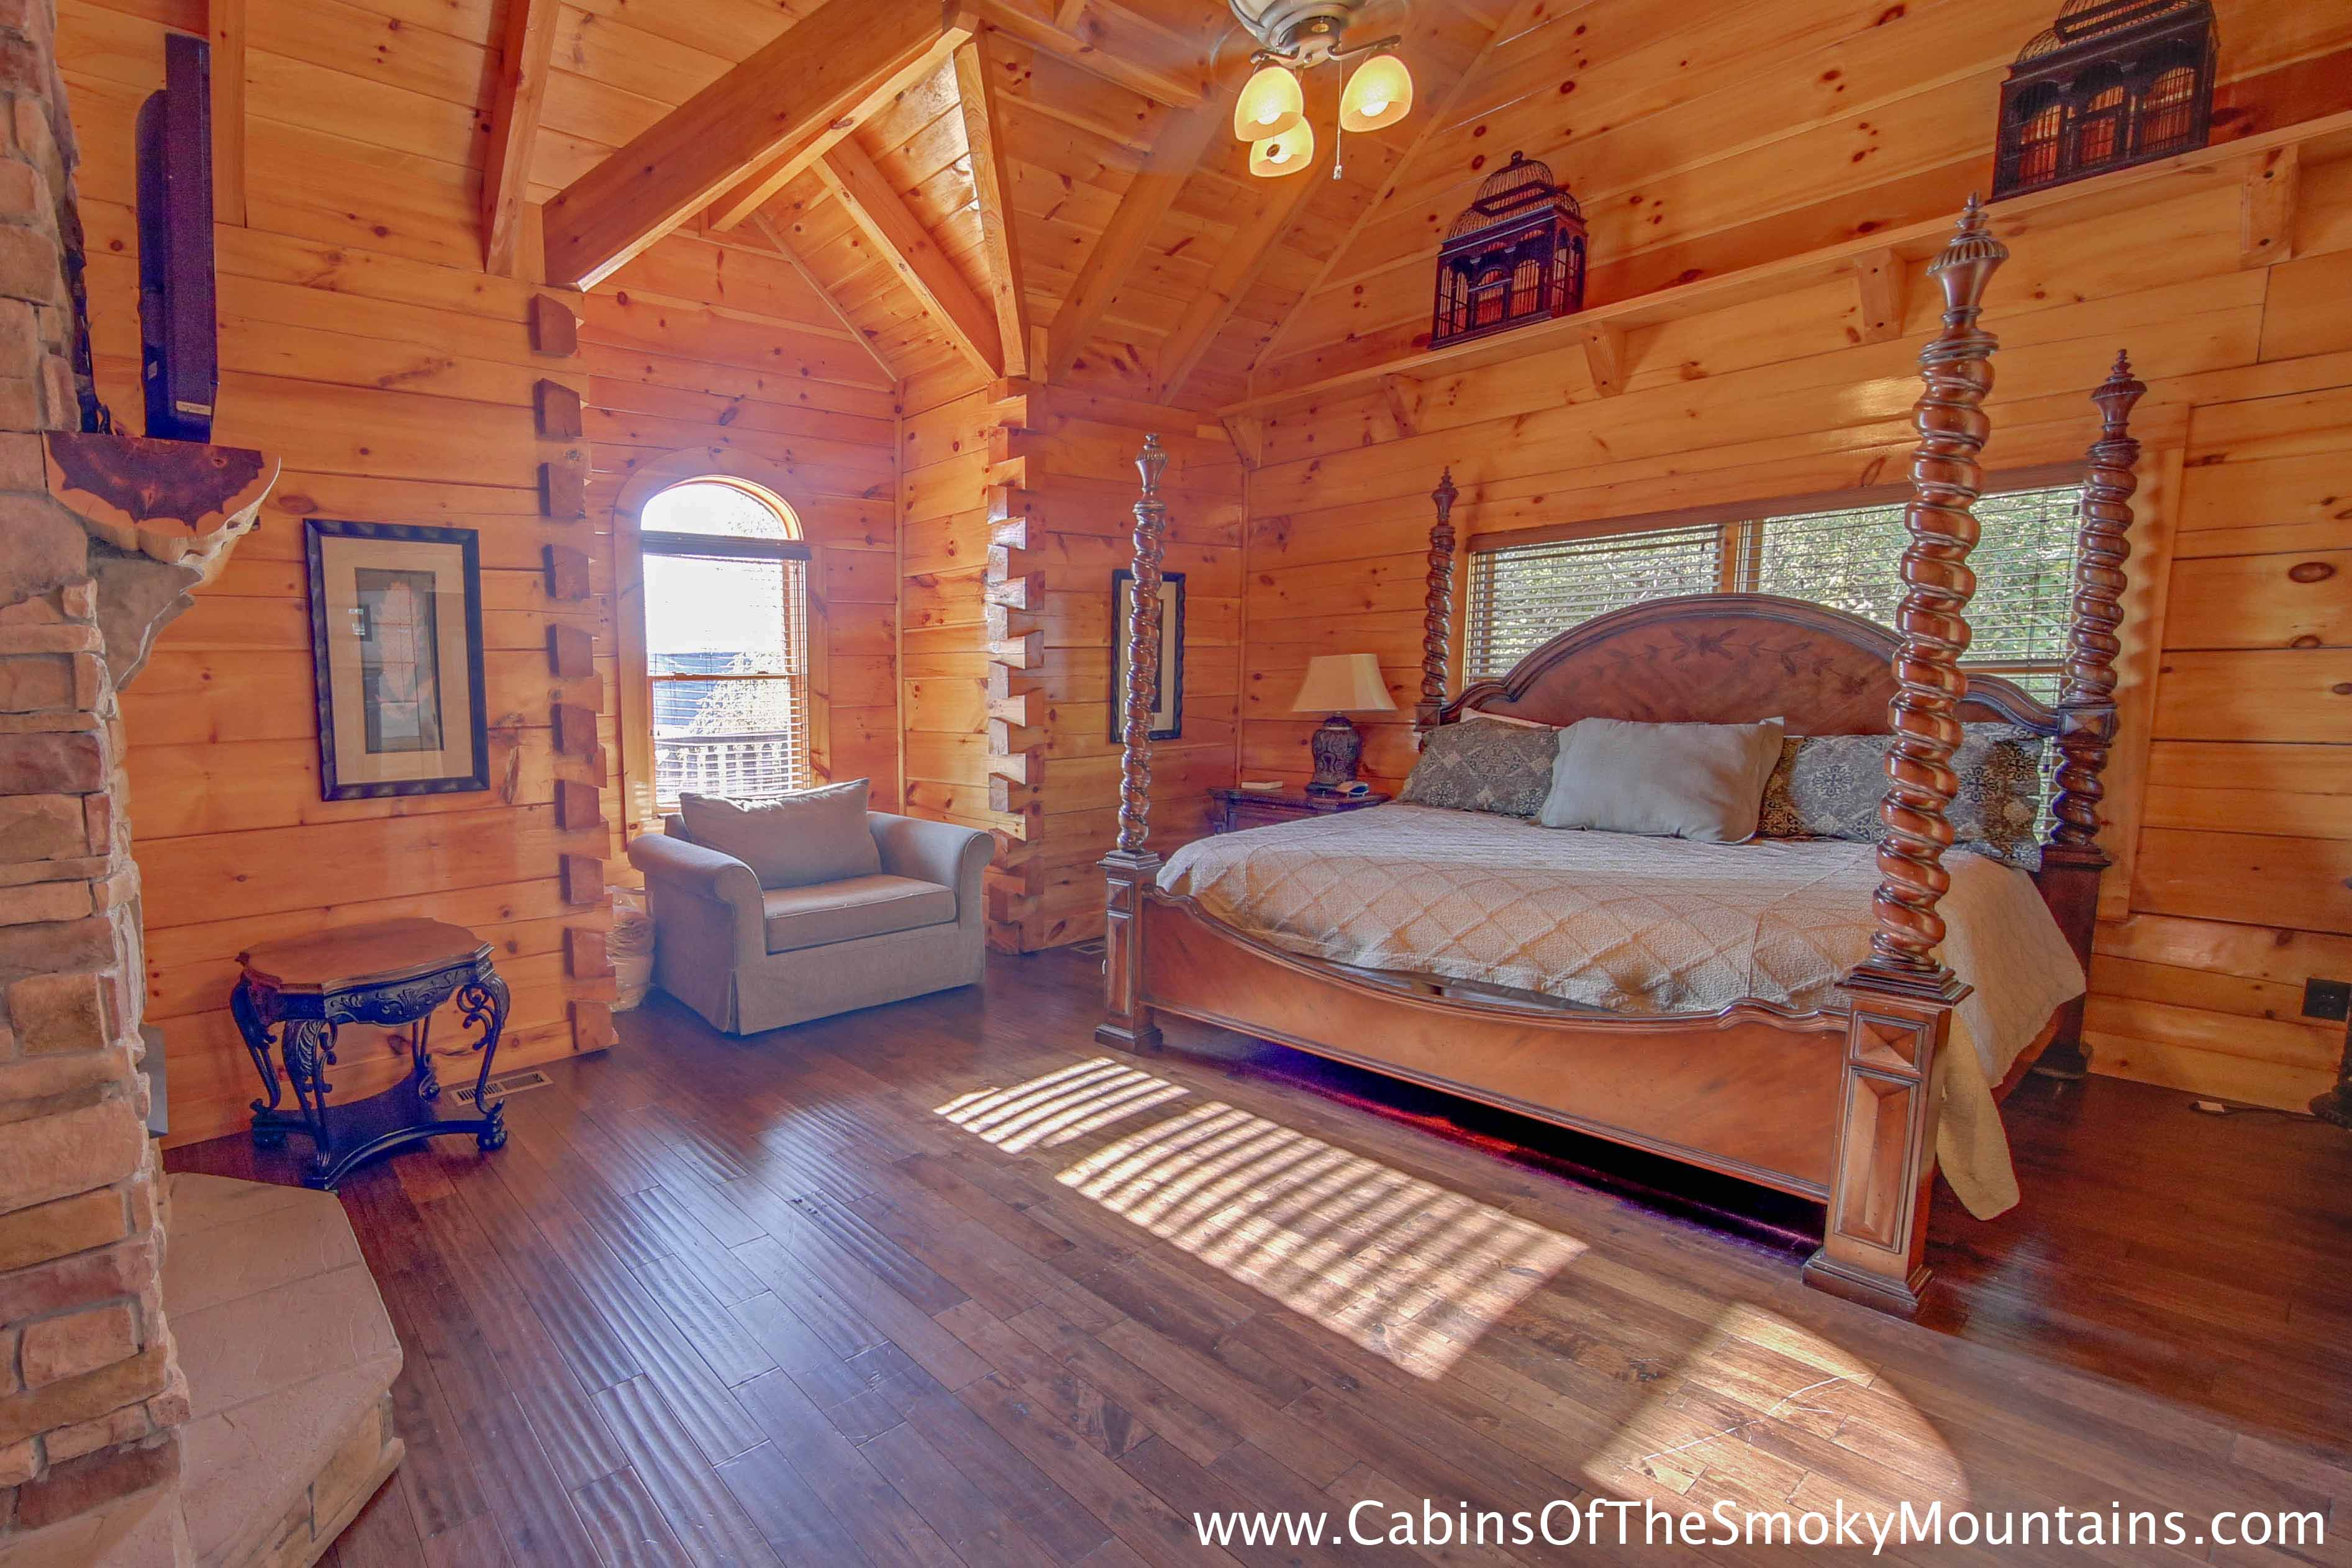 Lodge Bedroom Pigeon Forge Cabin Iron Mountain Lodge 6 Bedroom Sleeps 22